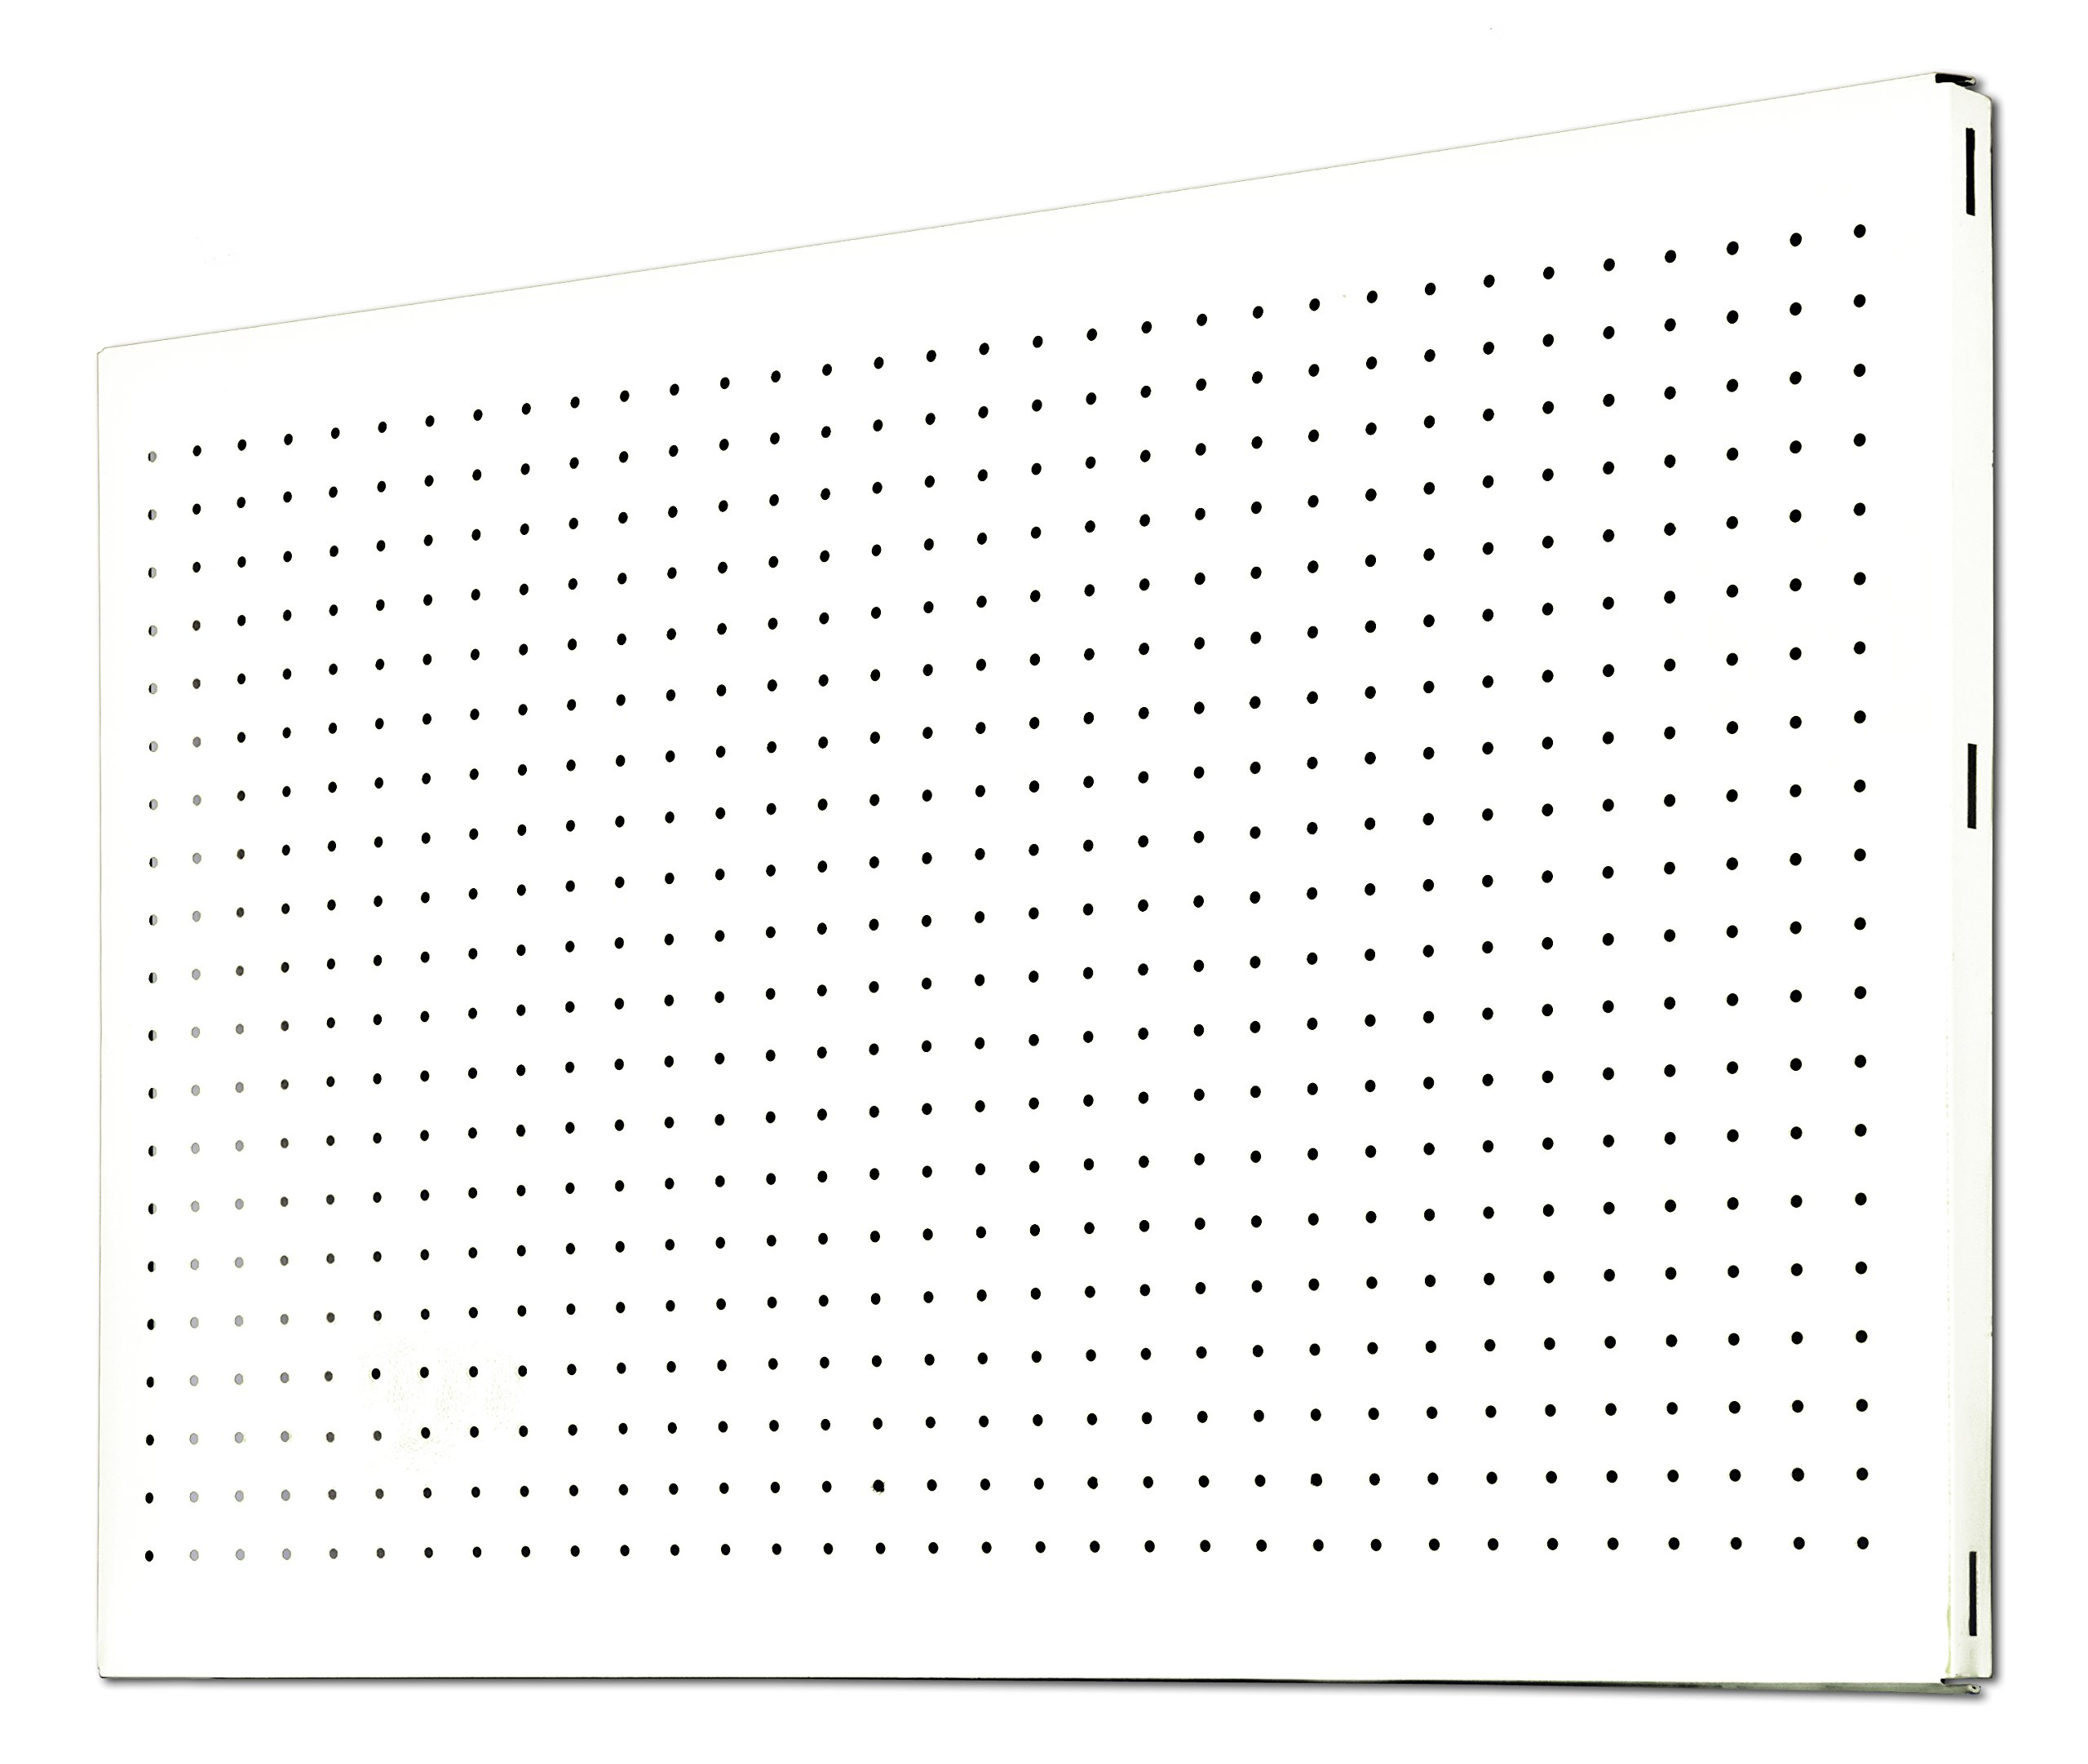 Simonrack Perforated Shelf, White, 1500 x 400 mm